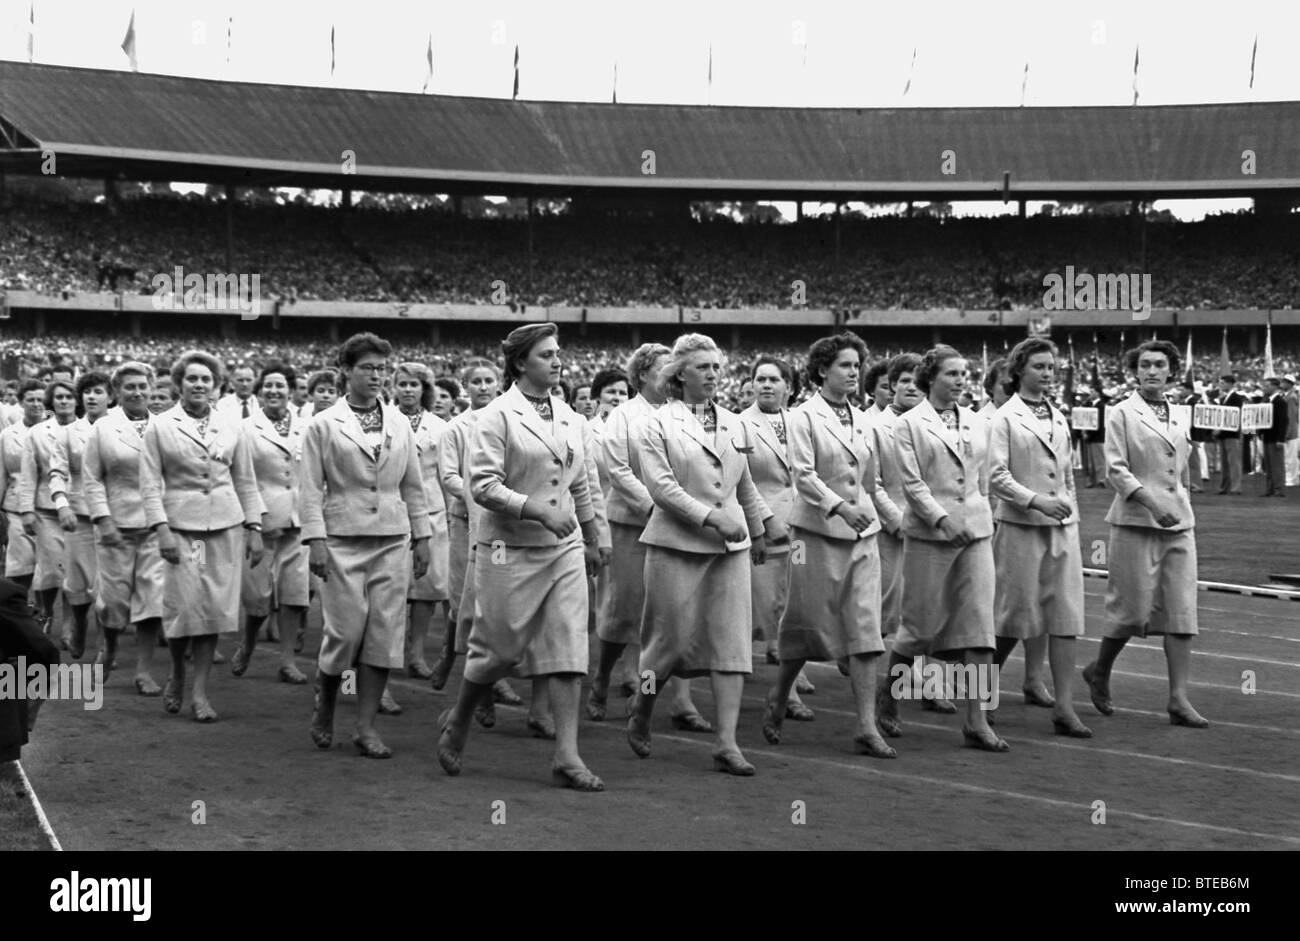 The 1956 Summer Olympics - Stock Image